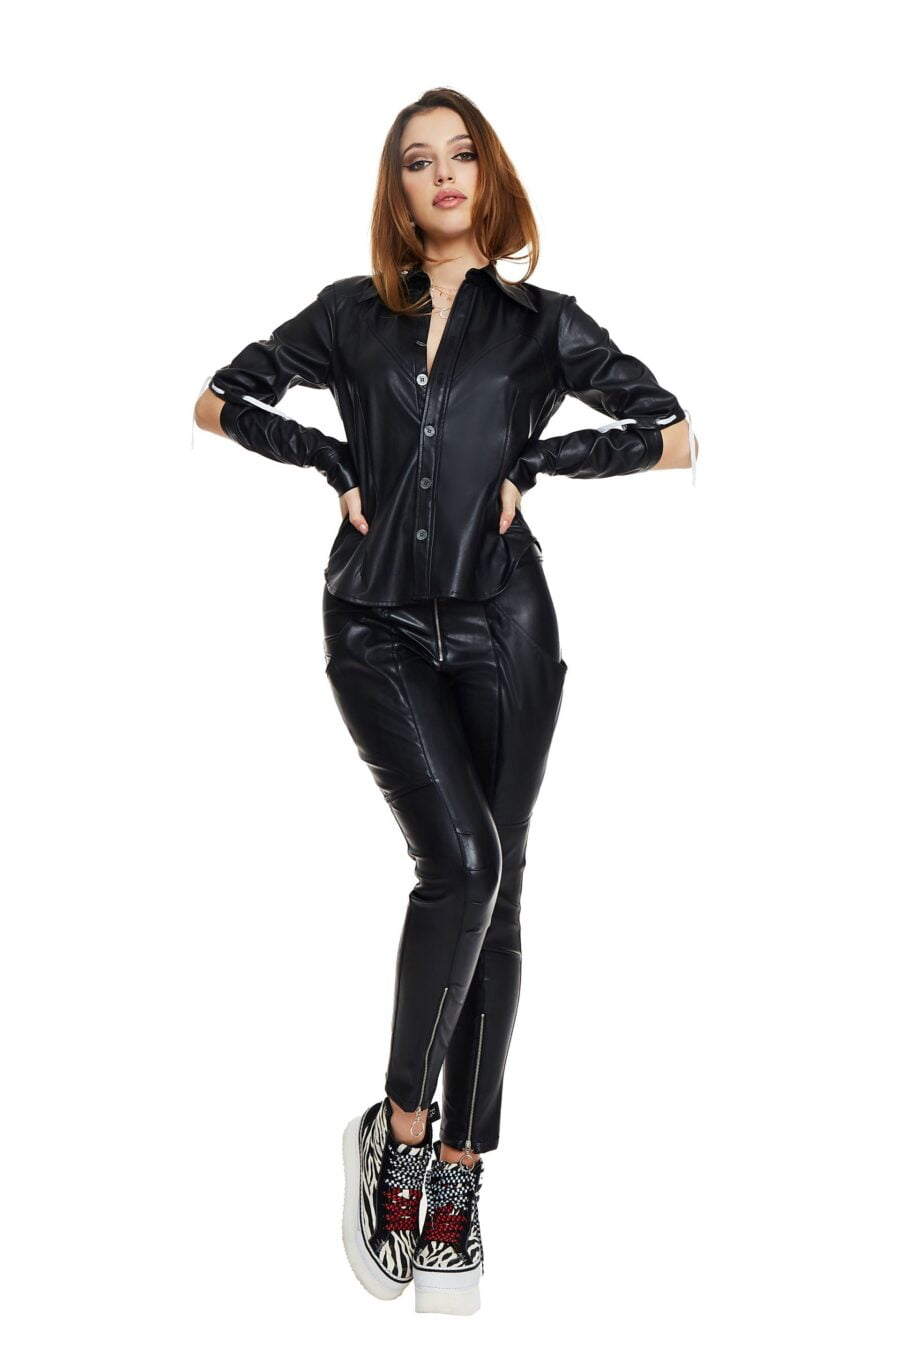 Stretch leather shirt with cutouts